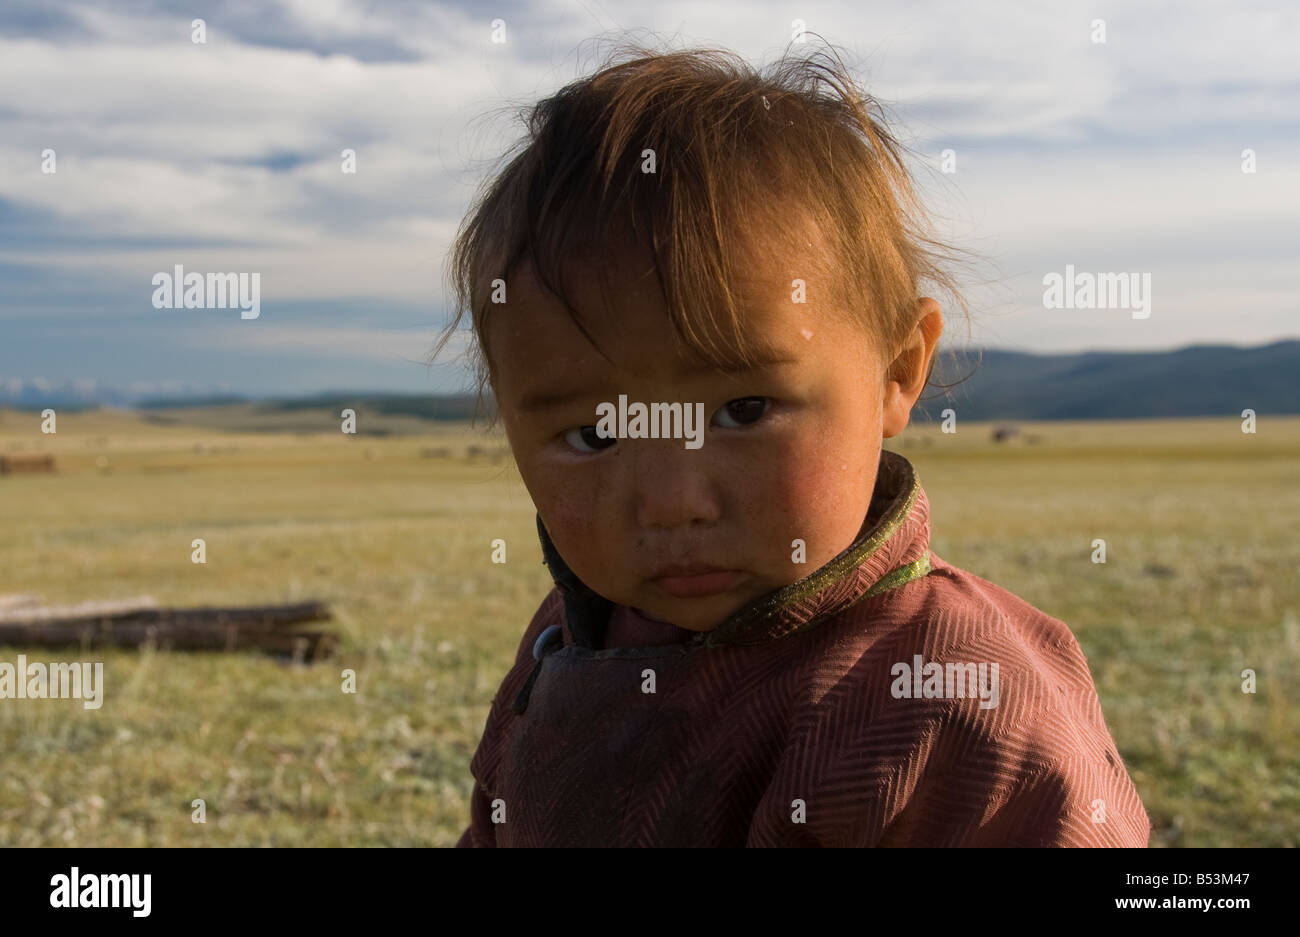 Child in Northern Mongolia - Stock Image